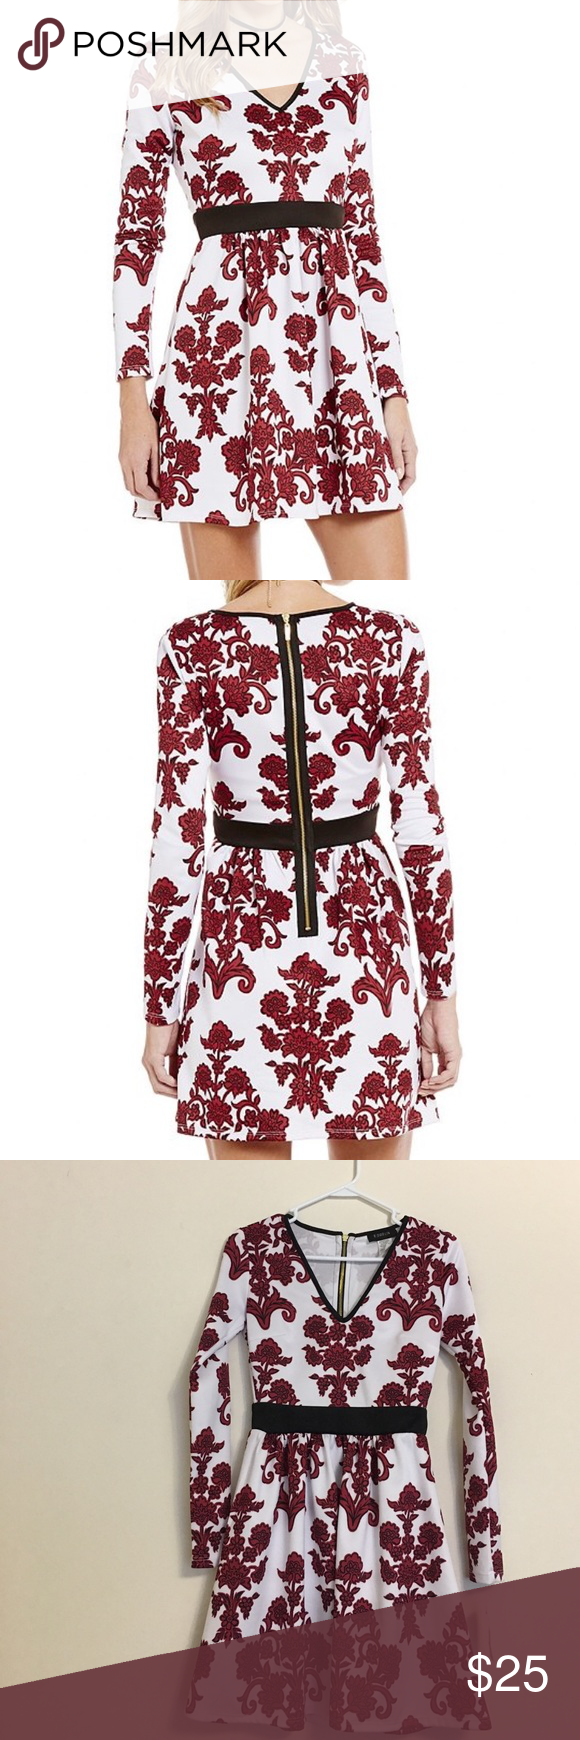 Nwt floral party dress nwt pinterest floral